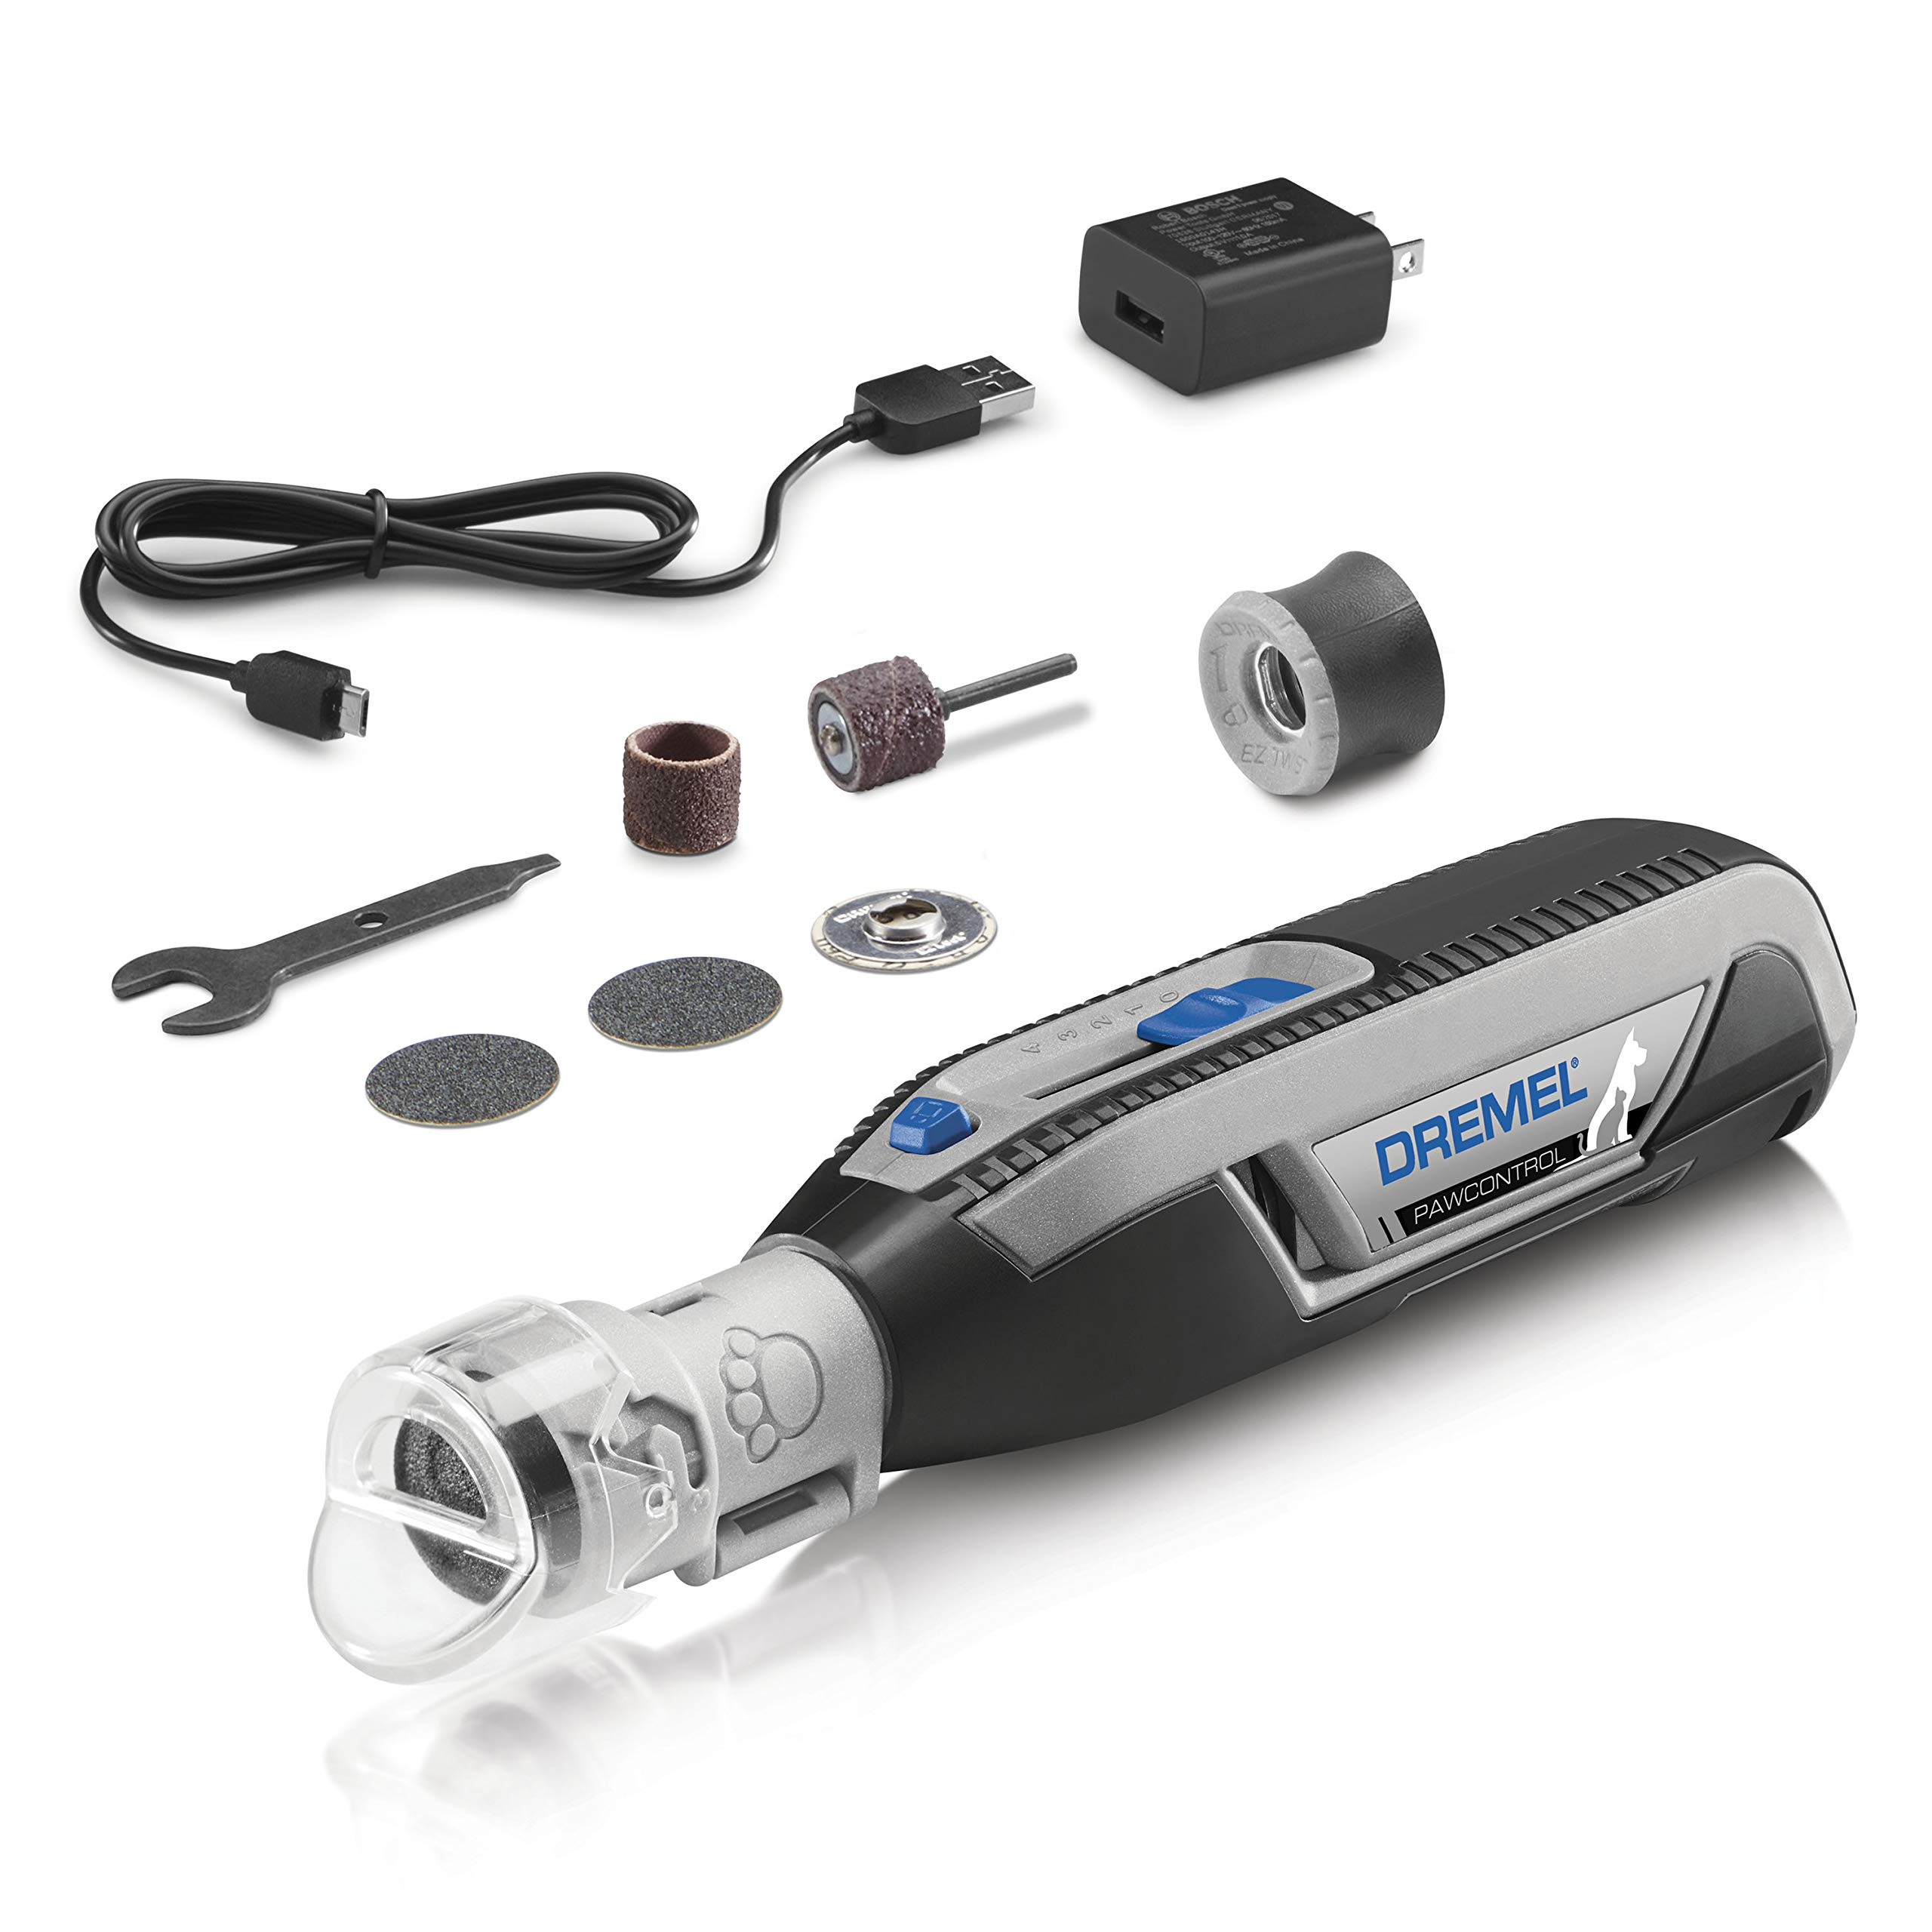 Dremel Pawcontrol 7760-PGK Cordless Pet Nail Grinder - Nail Trimmer for Dogs, Cats, Small Animals Claw Grooming Kit by Dremel